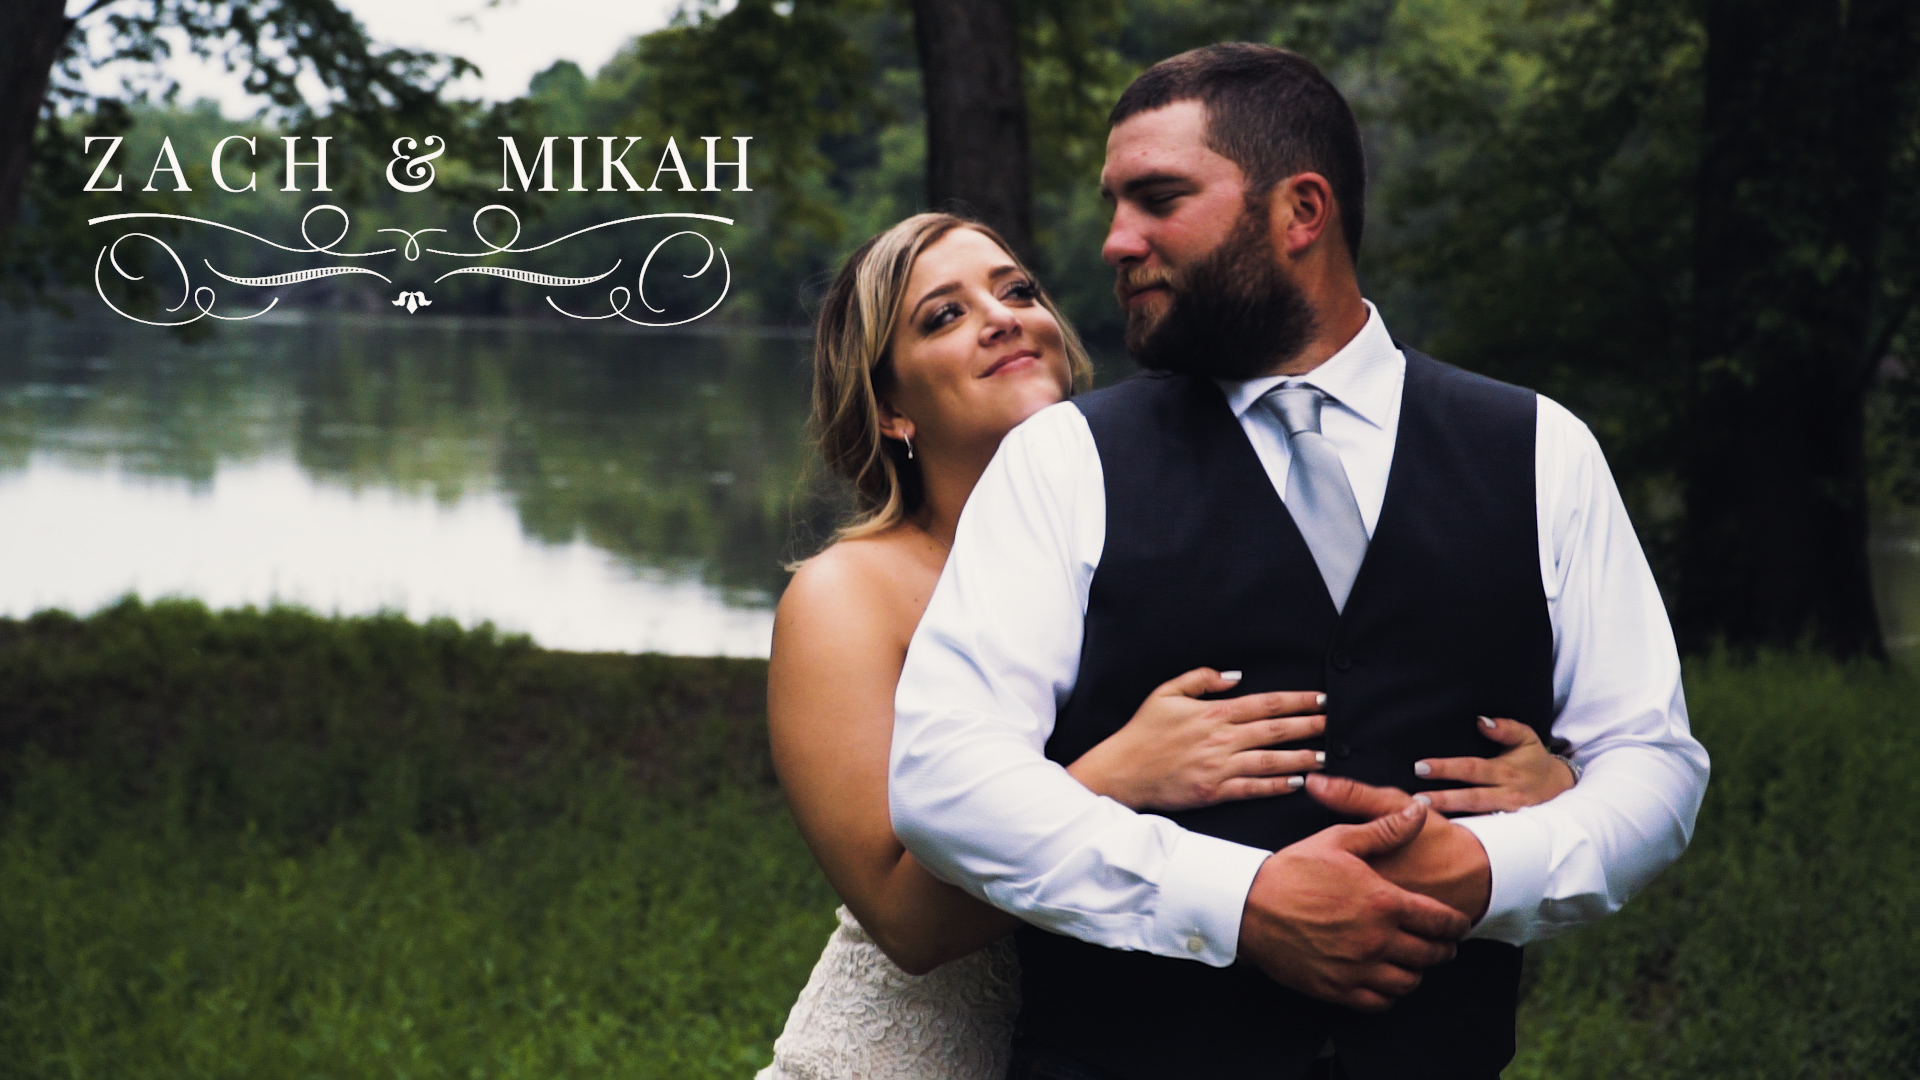 Zach + Mikah | Rockford, Illinois | SM&SF Park